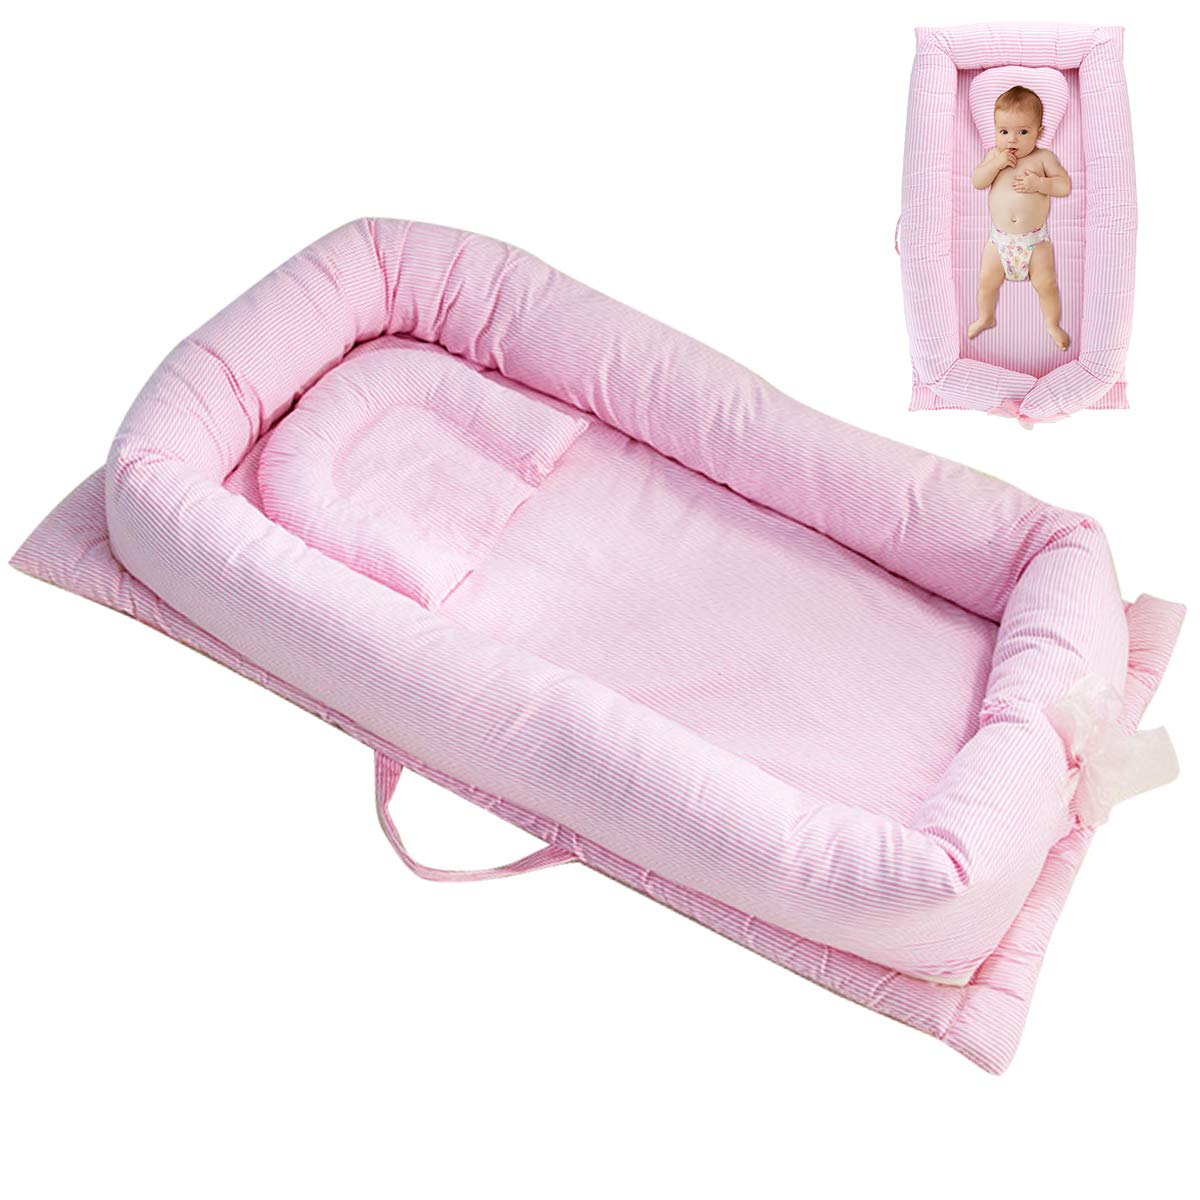 Yinuoday Baby Lounger Portable Baby Bed Cosleeper Bassinet Infant Sleeper Baby Crib Nursery Travel Folding Baby Bed Bag for 0-12 Month Baby